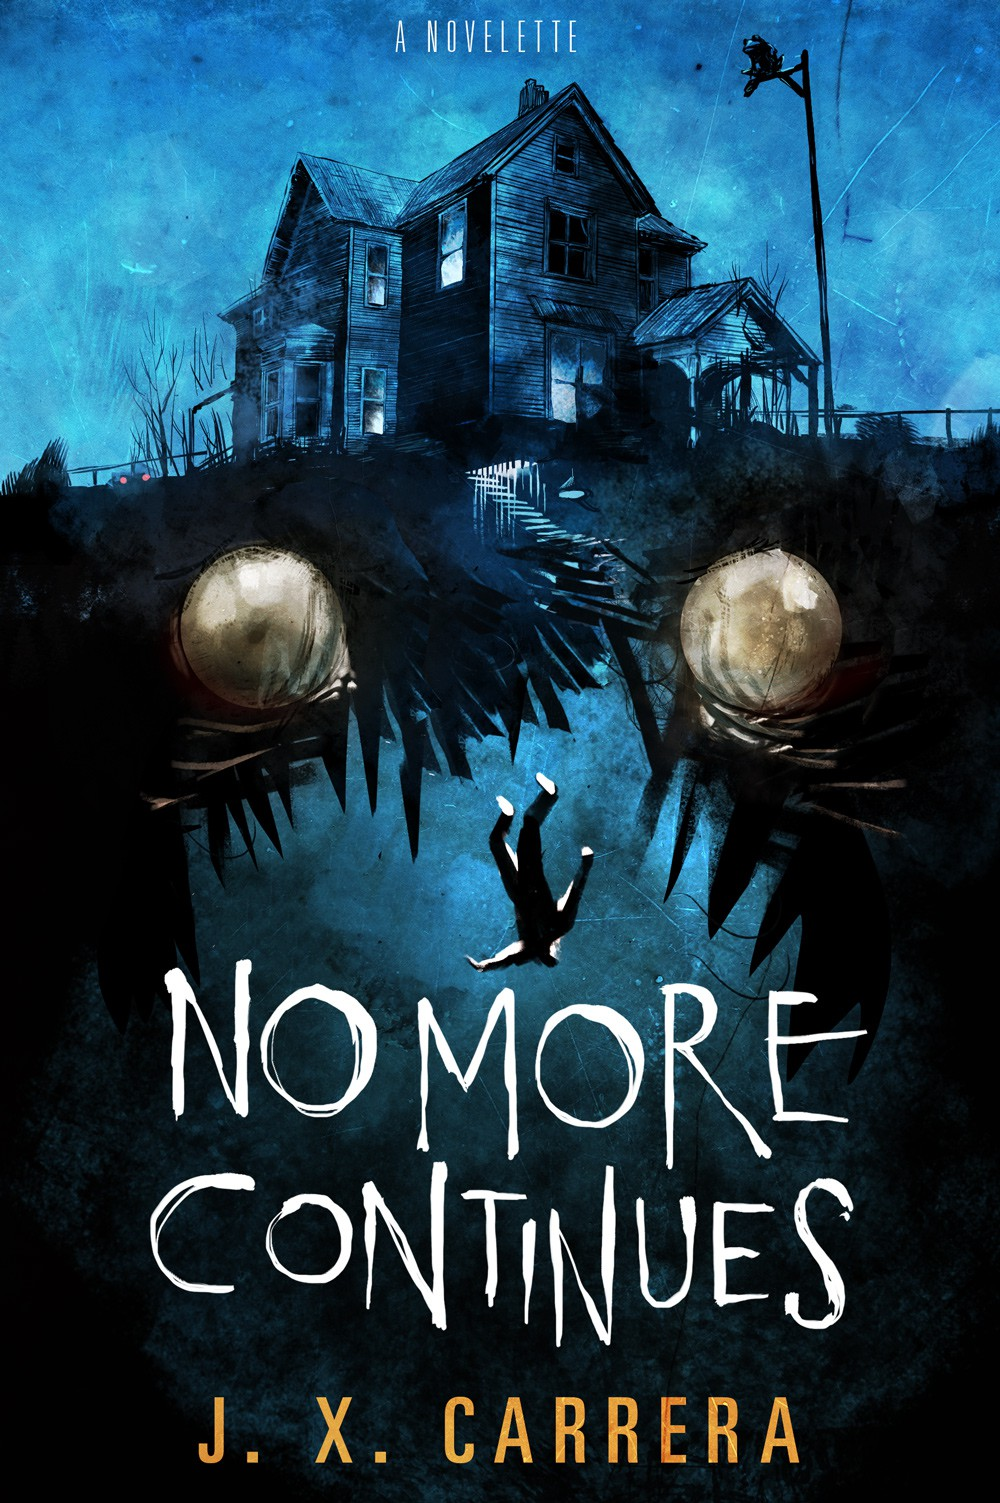 Create Horror Book Cover (with 1990s video game nostalgia)